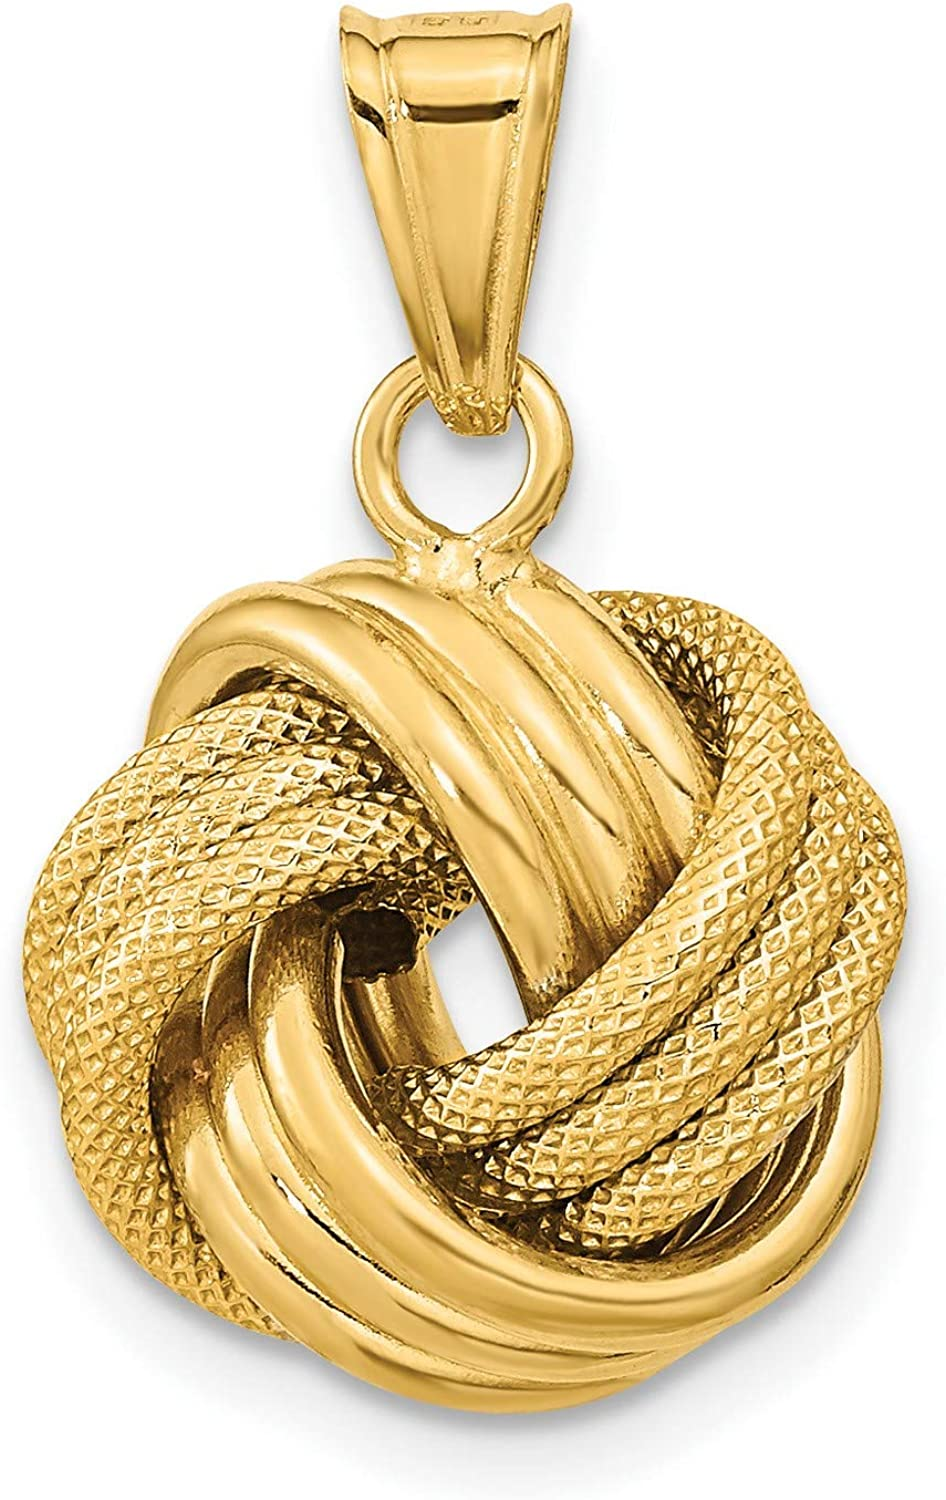 14k Yellow Gold Polished Textured Love Knot Pendant 18 mm x 16 mm